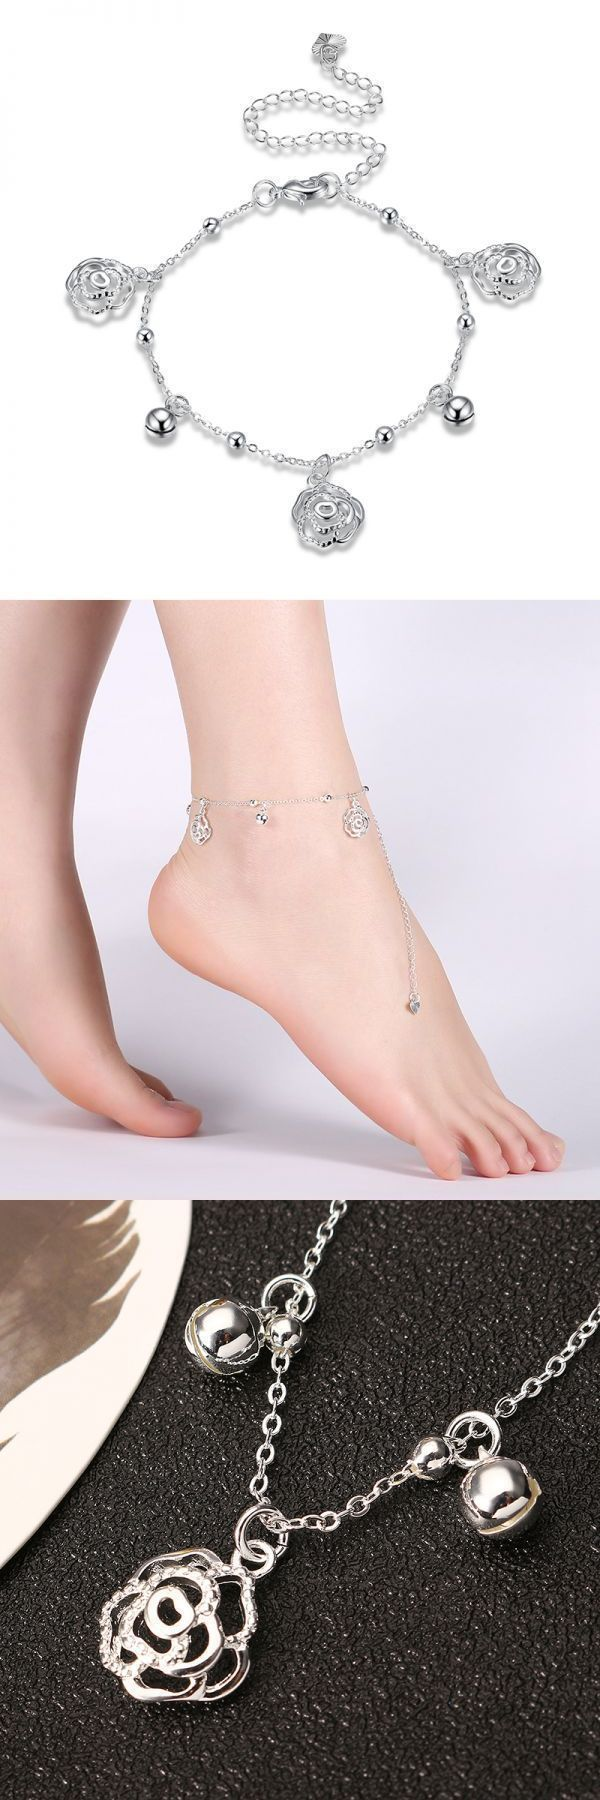 Rose and bell pendant silver plated adjustable anklet women jewelry